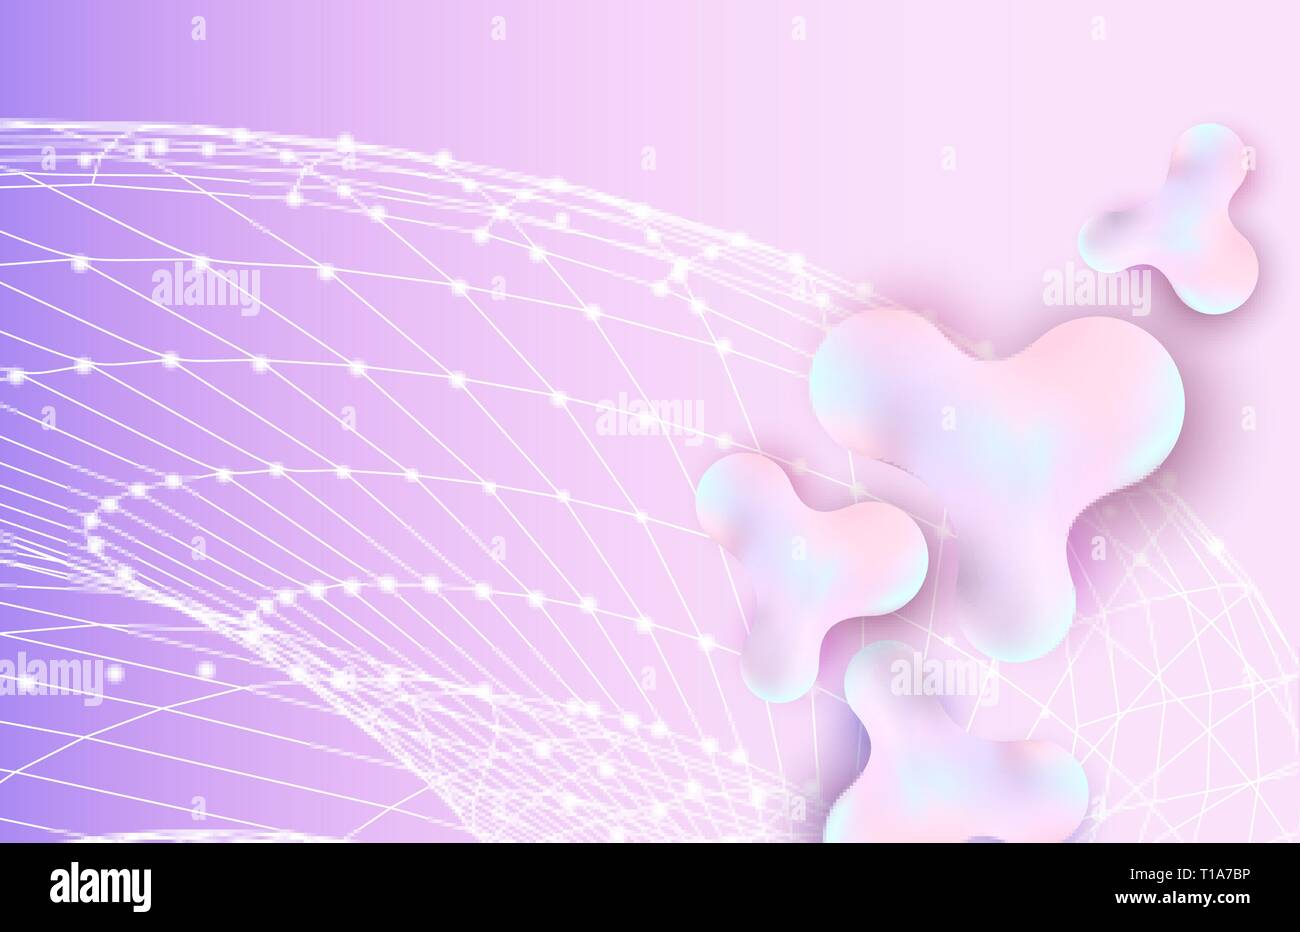 abstract 3d inkblots background with text space liquid bubbles vector illustration network concept drawing with polygonal lines and dots 3d gradient shapes backdrop composition wallpaper design T1A7BP